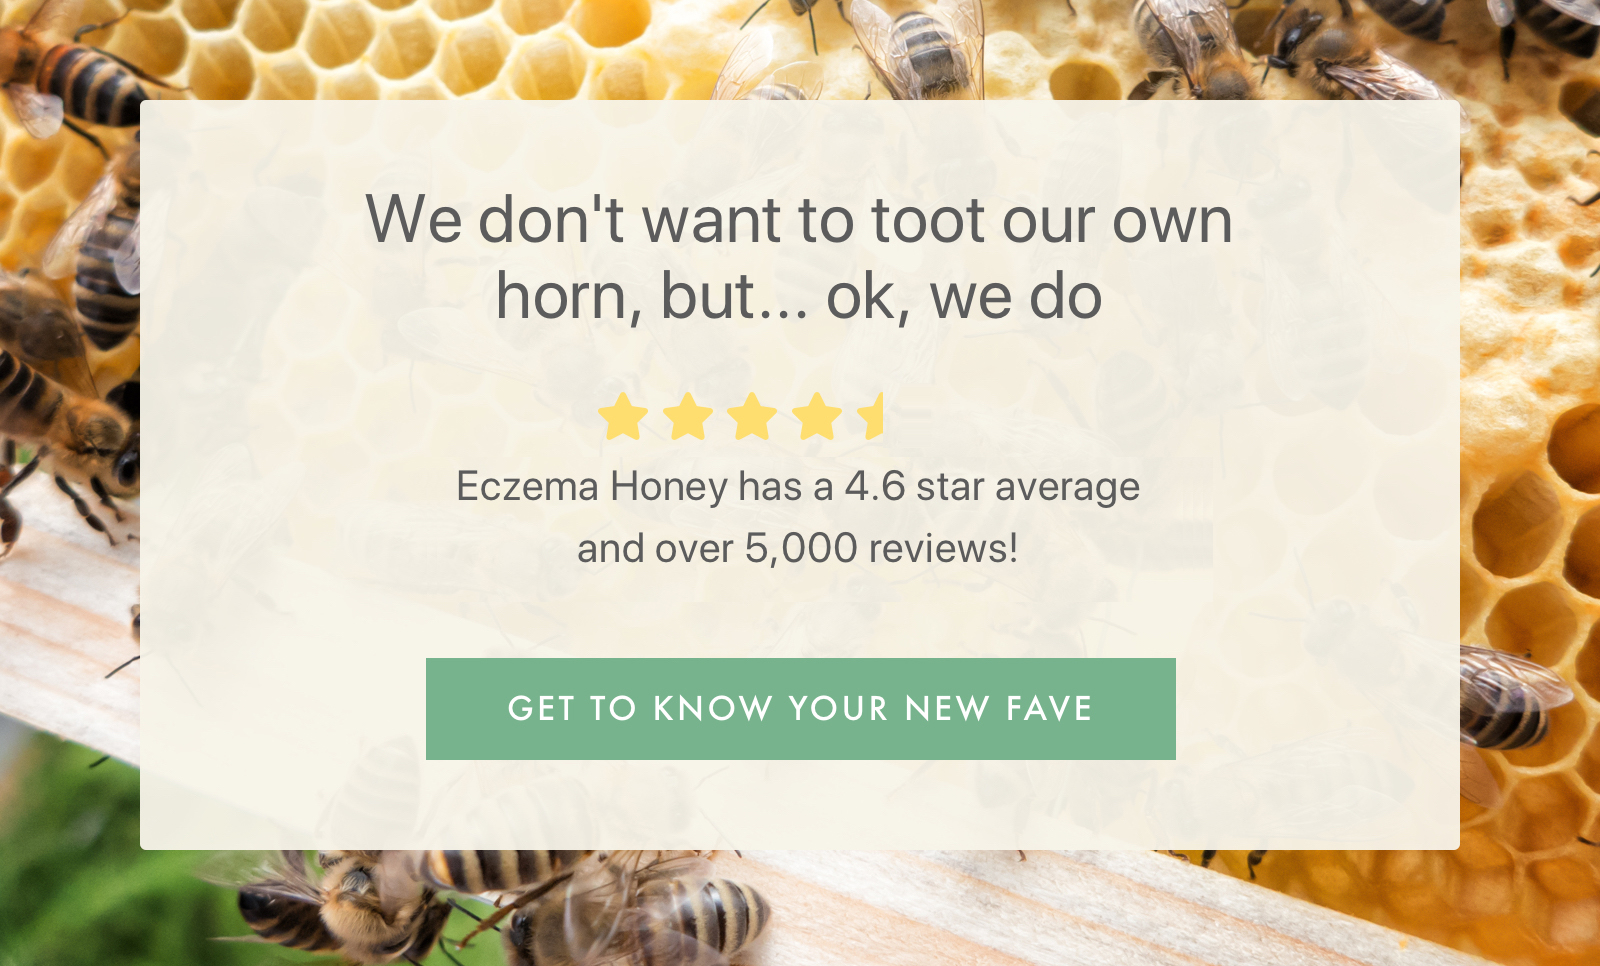 We don't want to toot our own horn, but...ok, we do / Eczema Honey has a 4.6 star average and over 5,000 reviews! / GET TO KNOW YOUR NEW FAVE